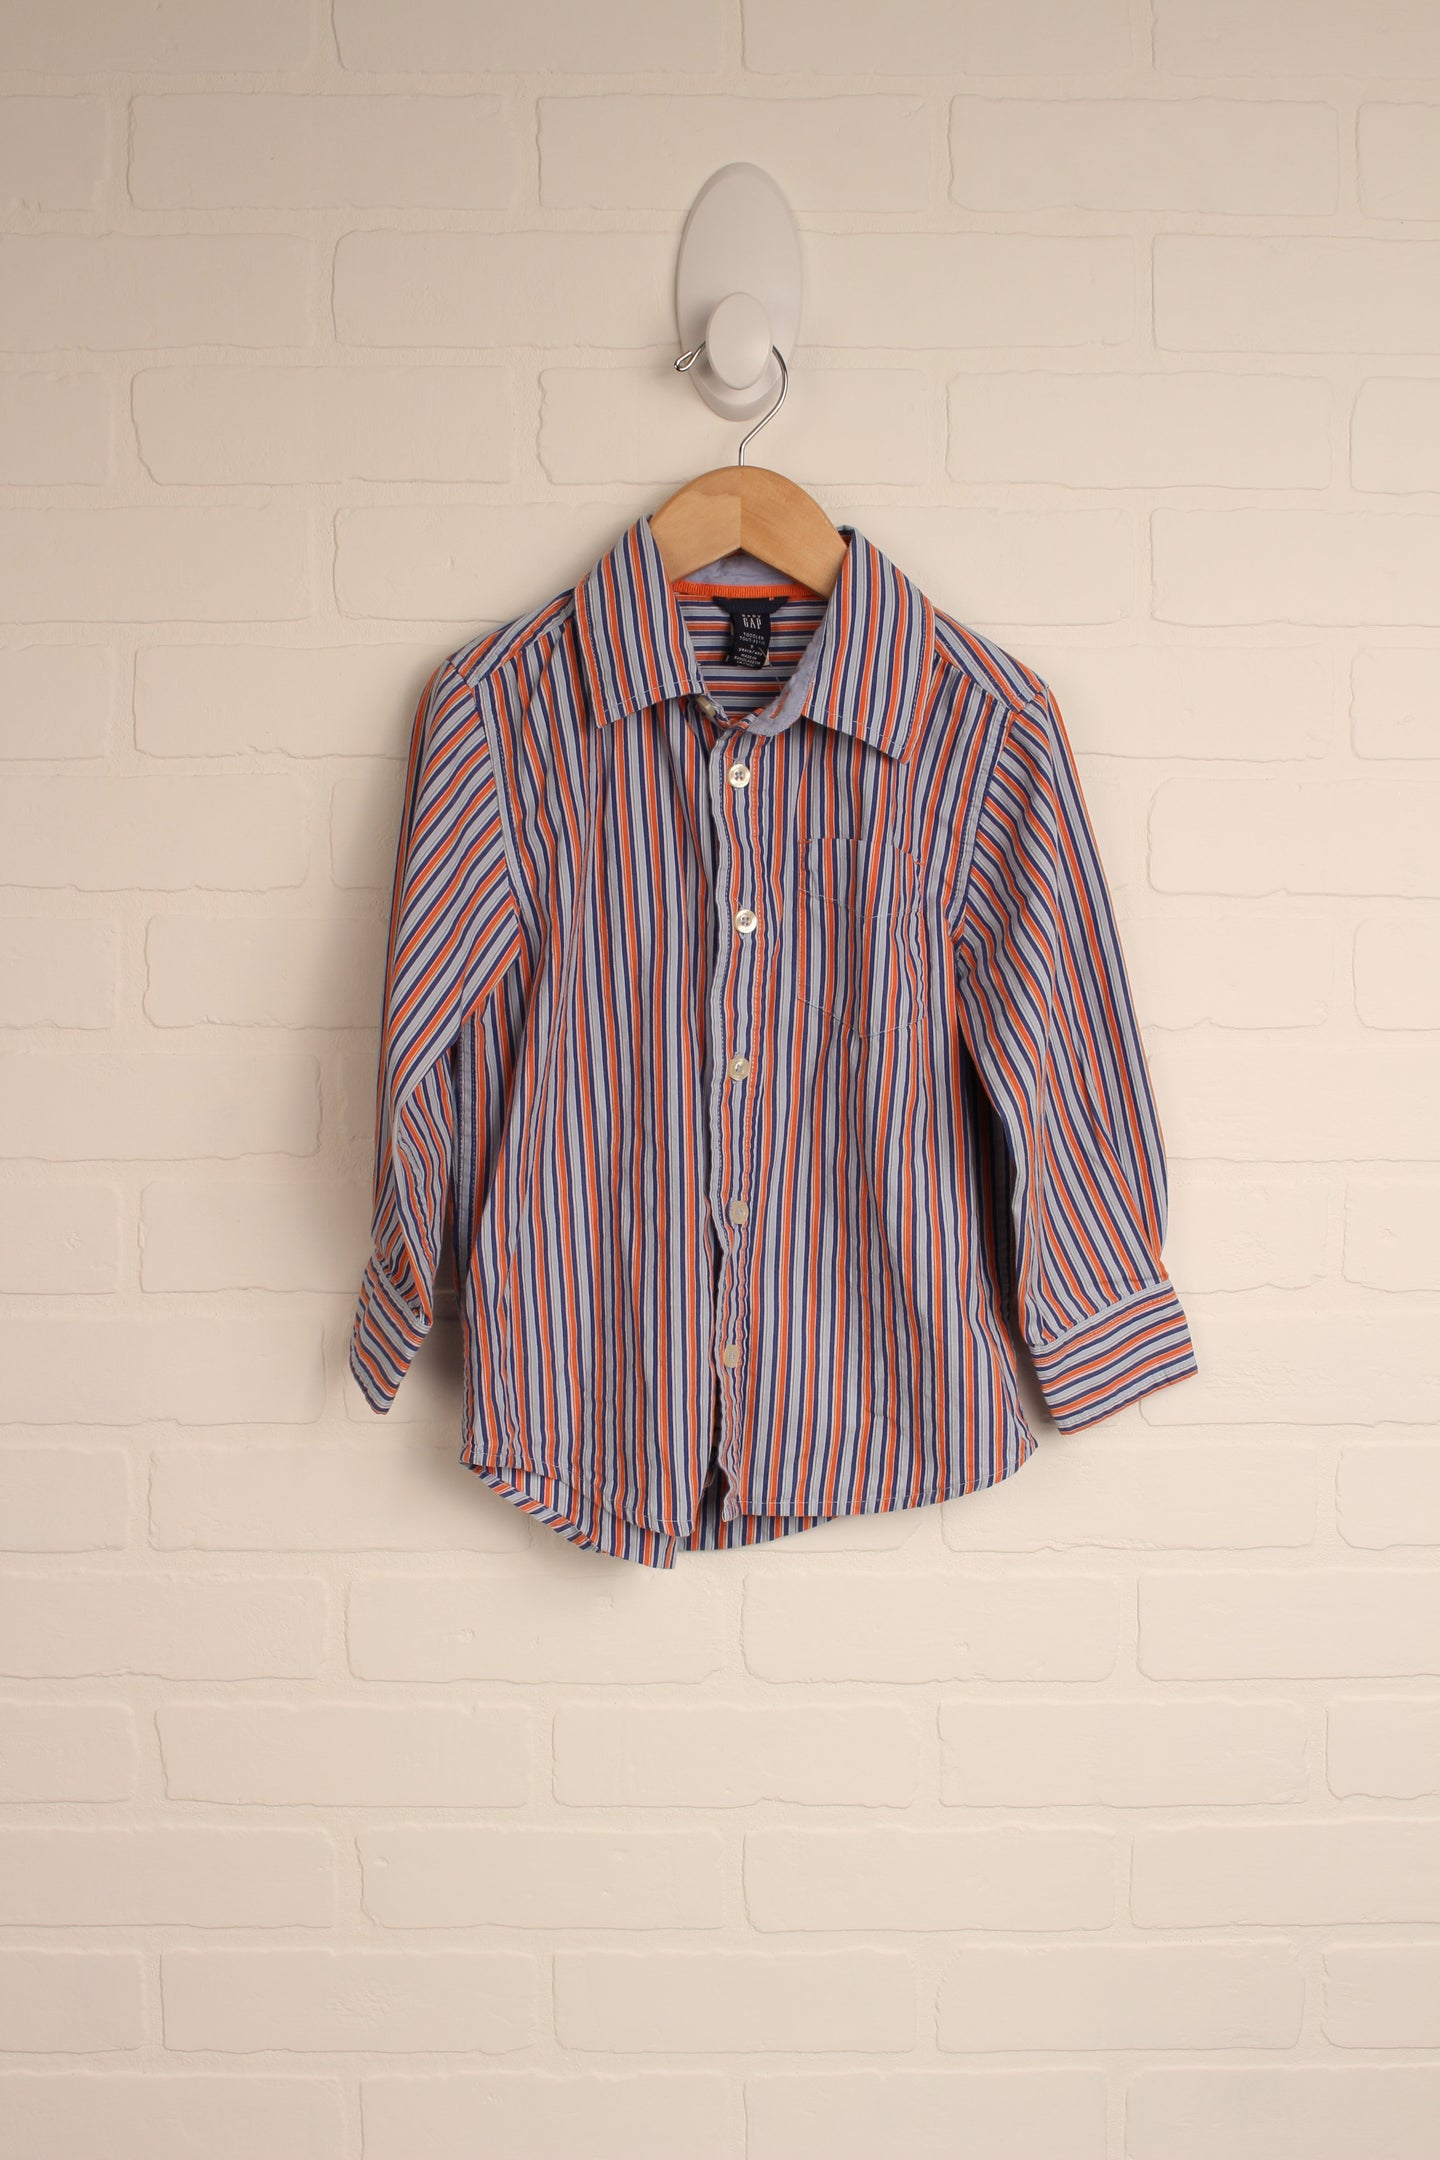 Light Blue + Orange Button-Up (Size 5)